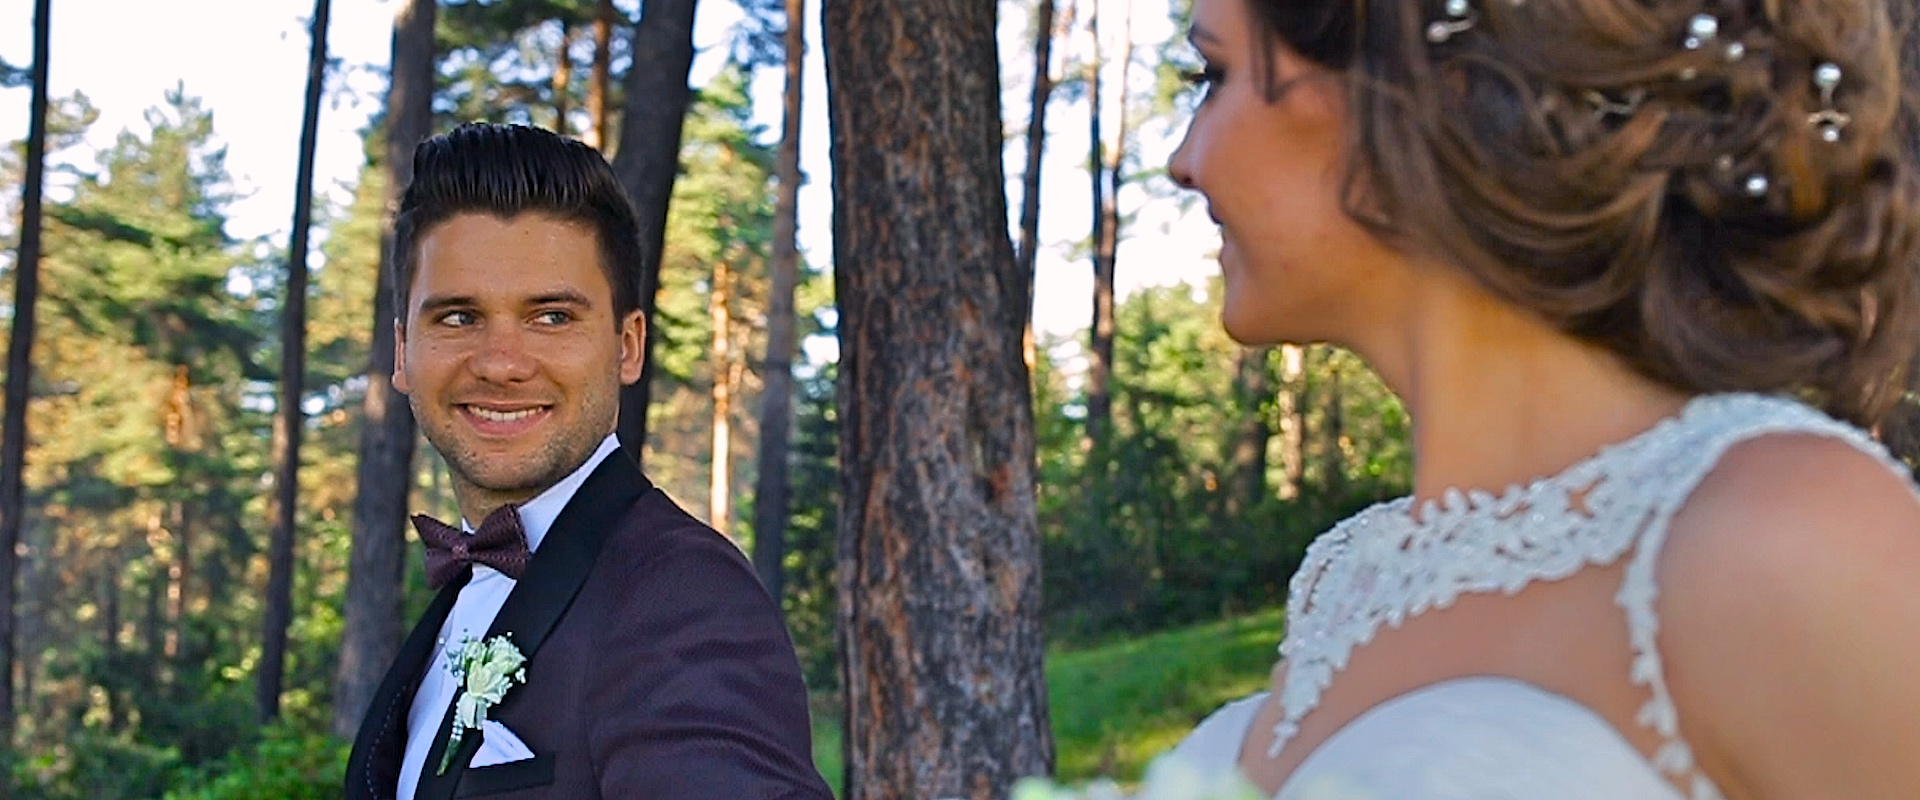 Groom looking at his bride while walking in the forest - Carpathian Mountains